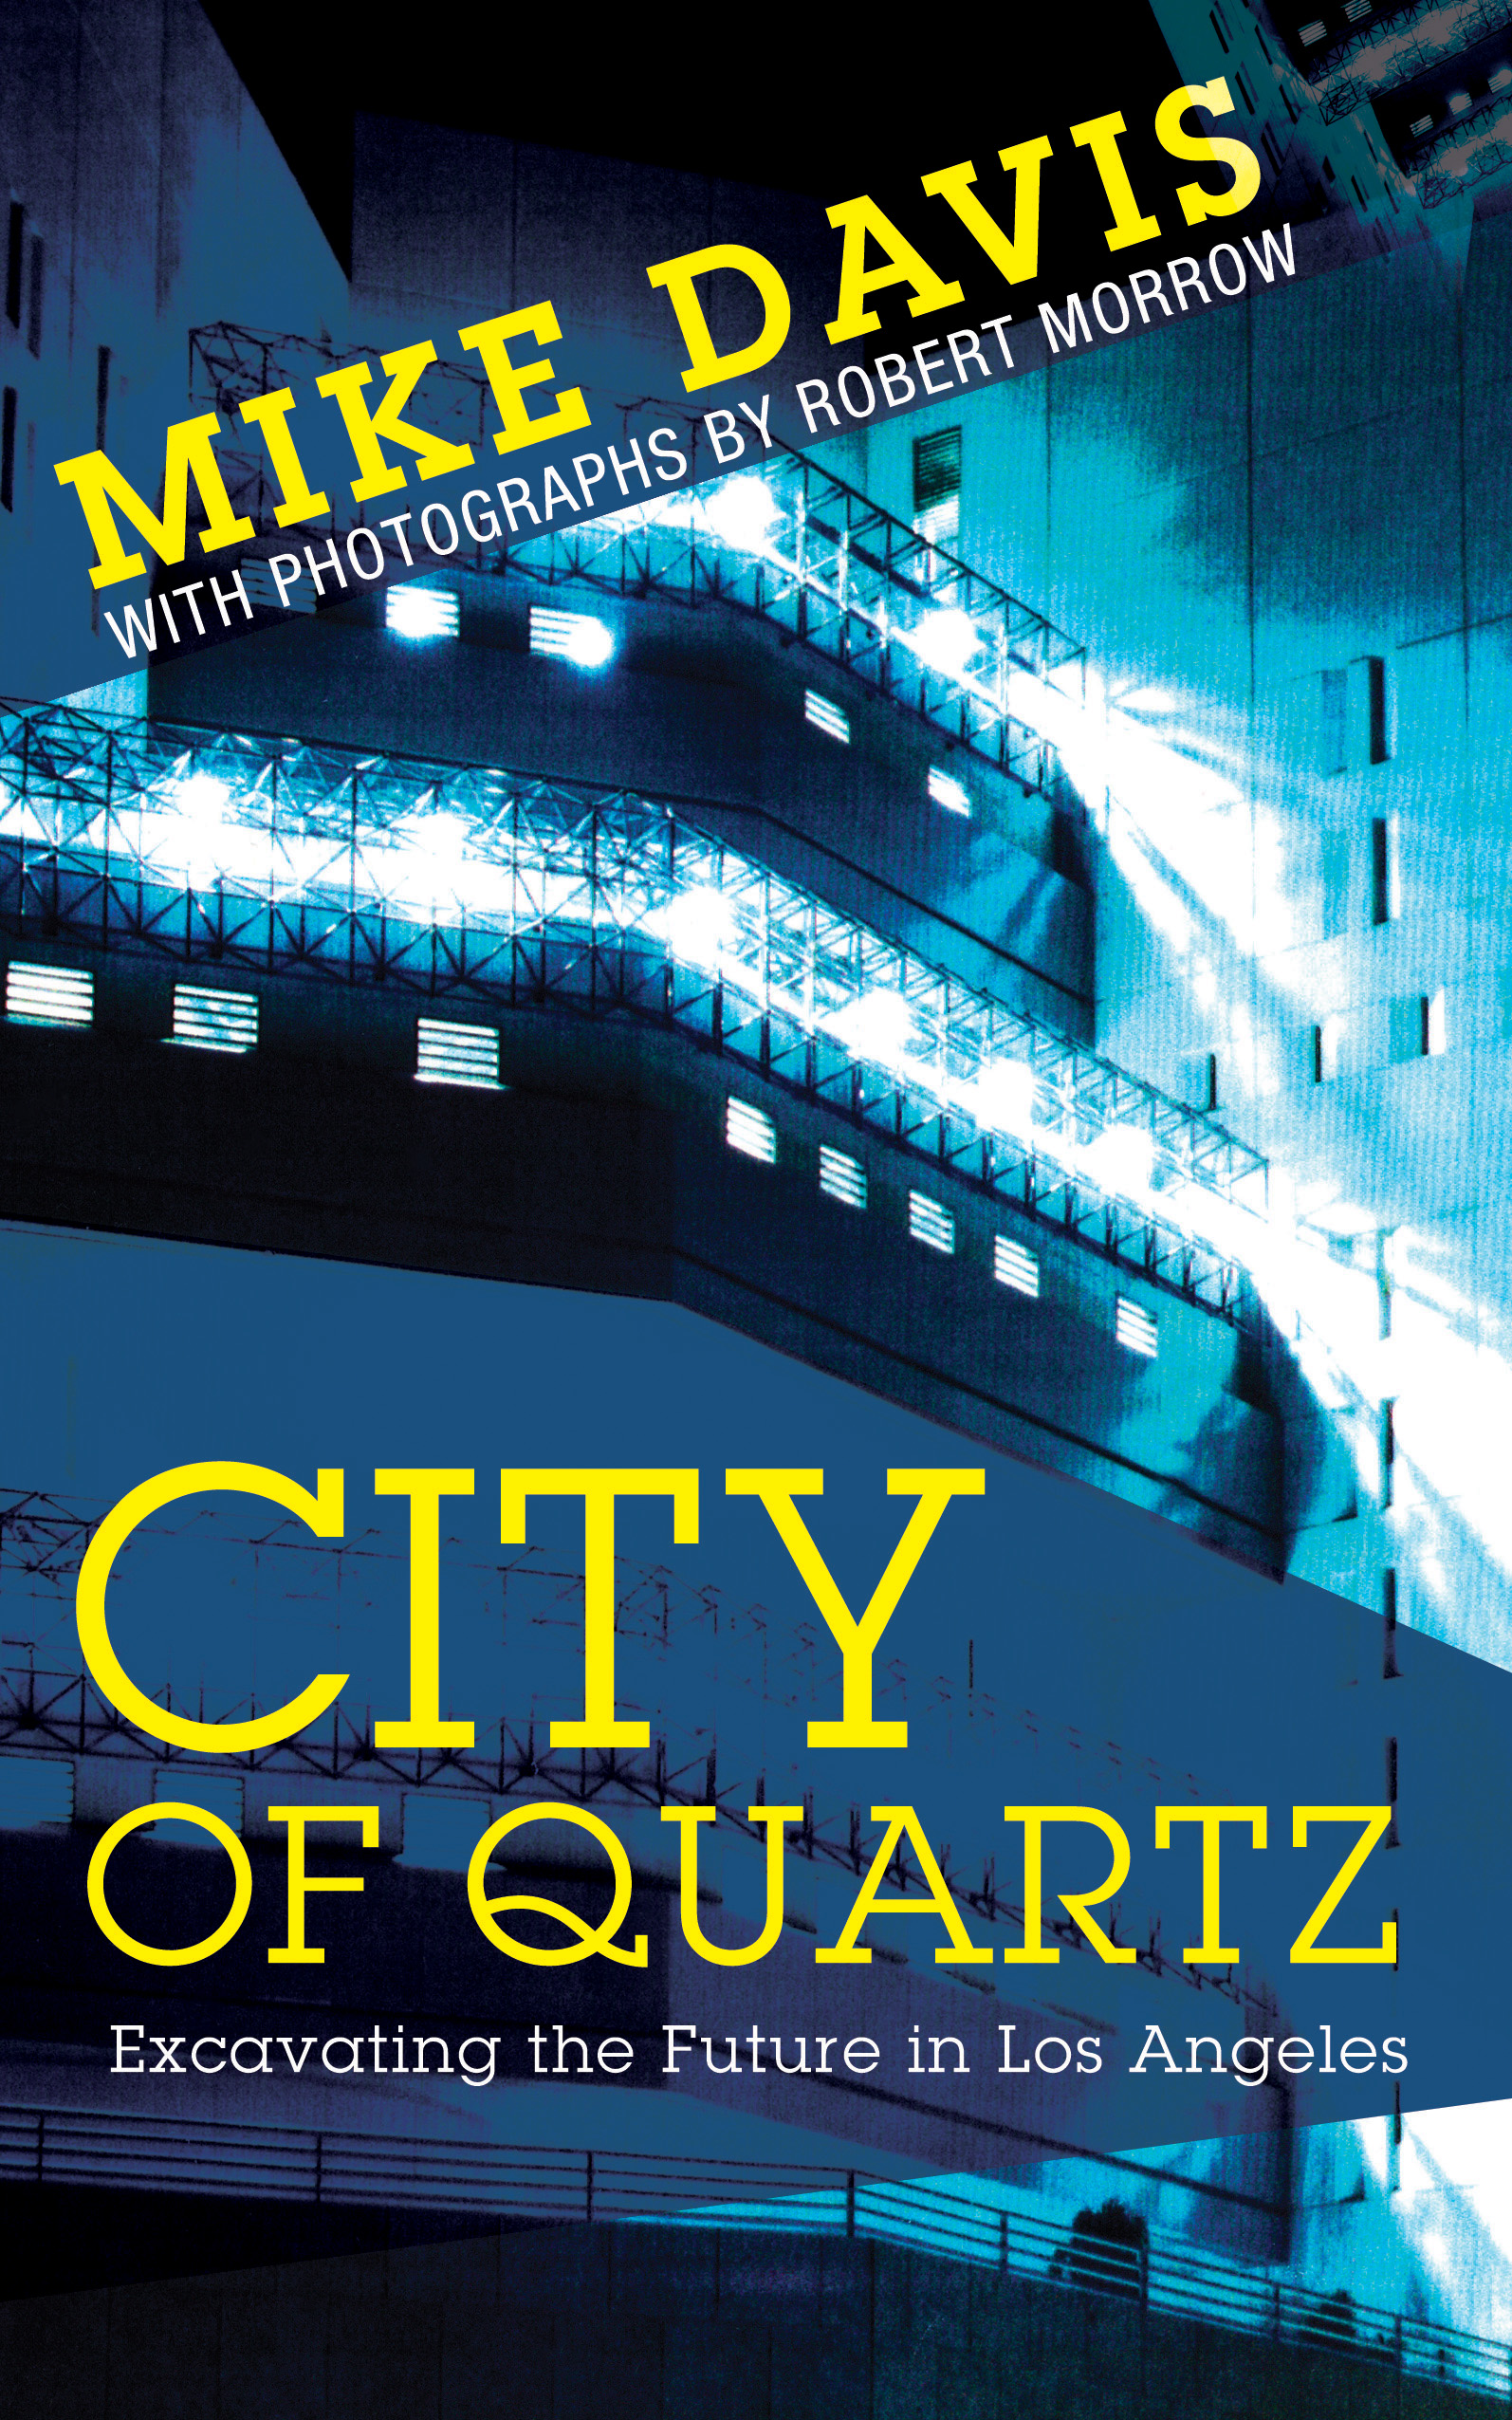 an analysis of the development of los angeles as depicted in city of quartz by mike davis Mike davis' book 'city of quartz', where he criticizes the loss of public spaces in los angeles due to the rapid development of downtown los angeles.